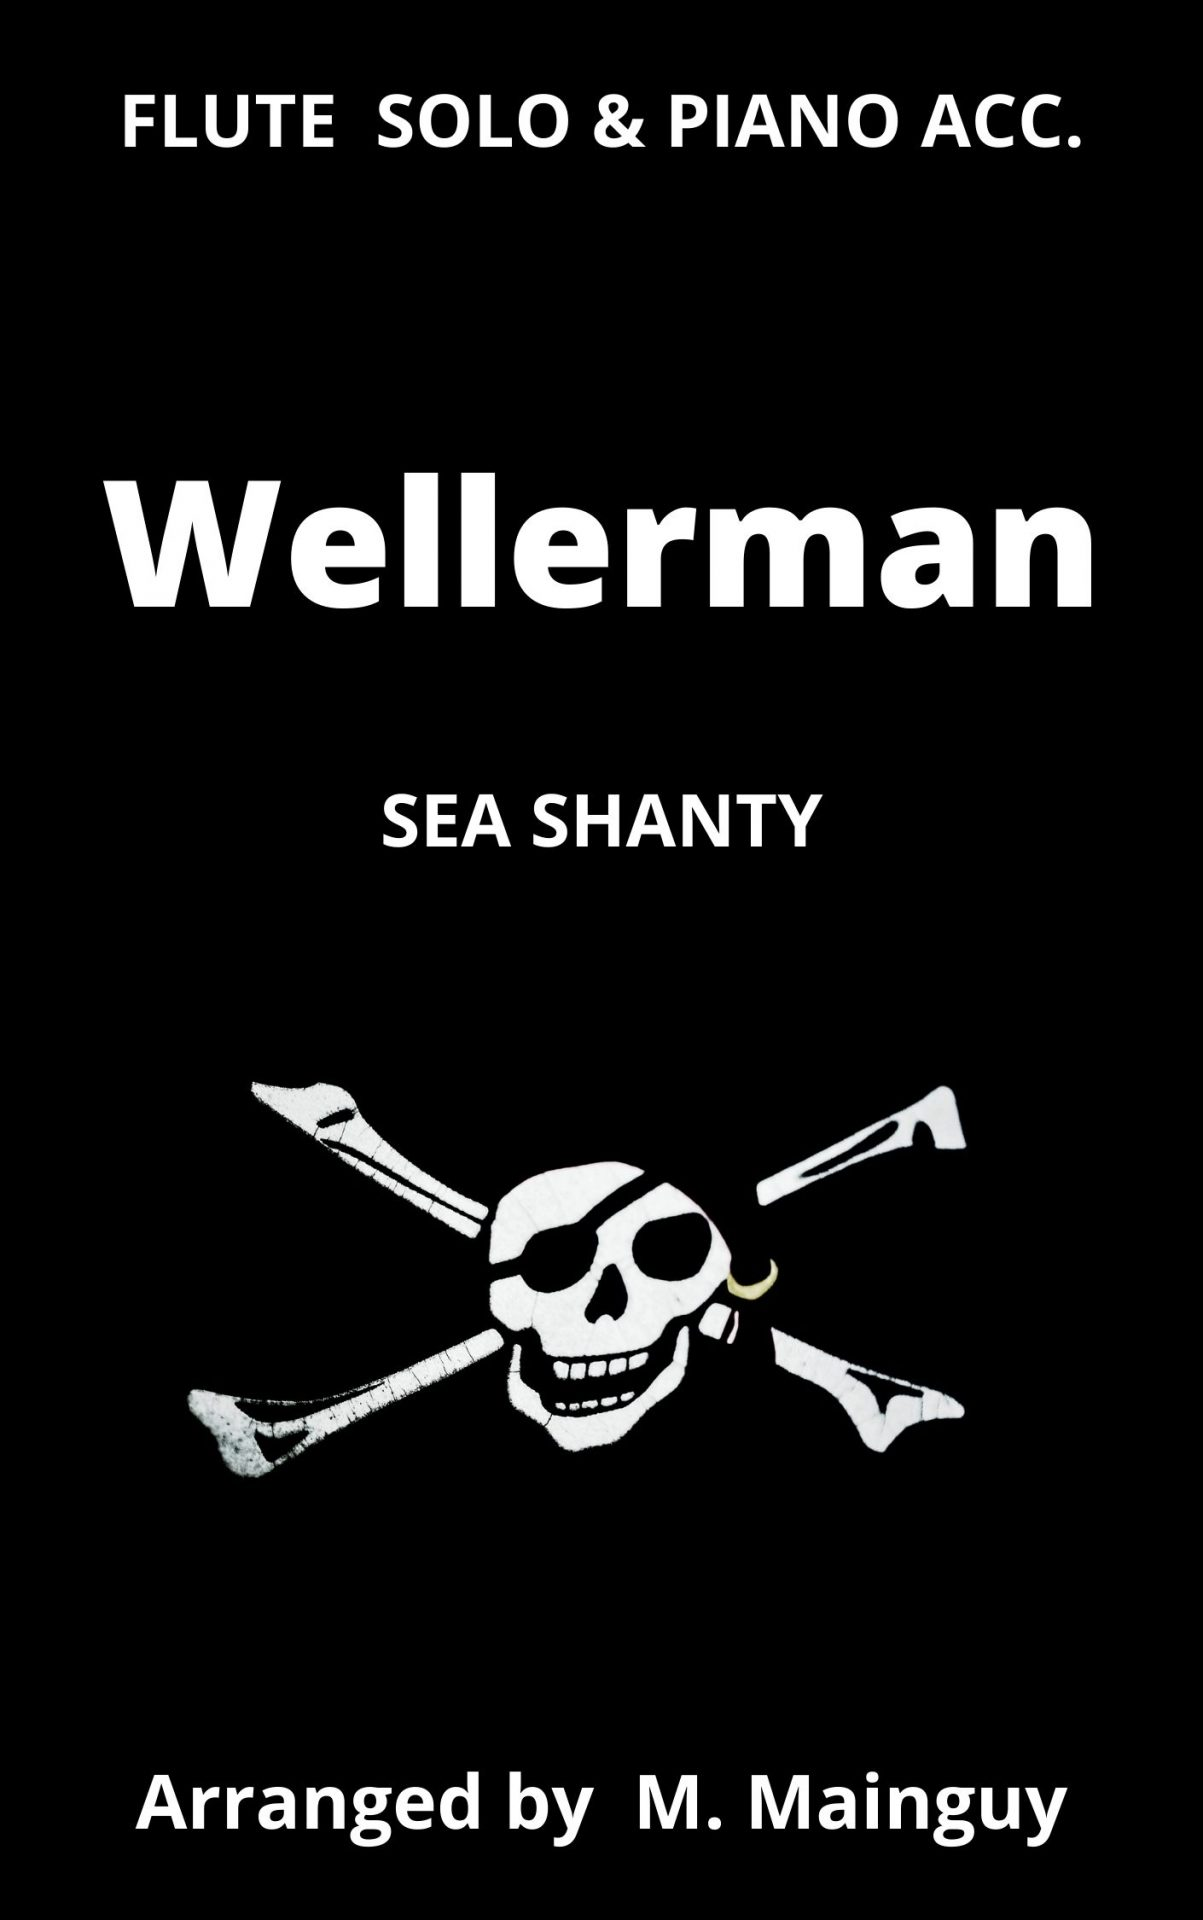 Copy of Wellerman 3 scaled